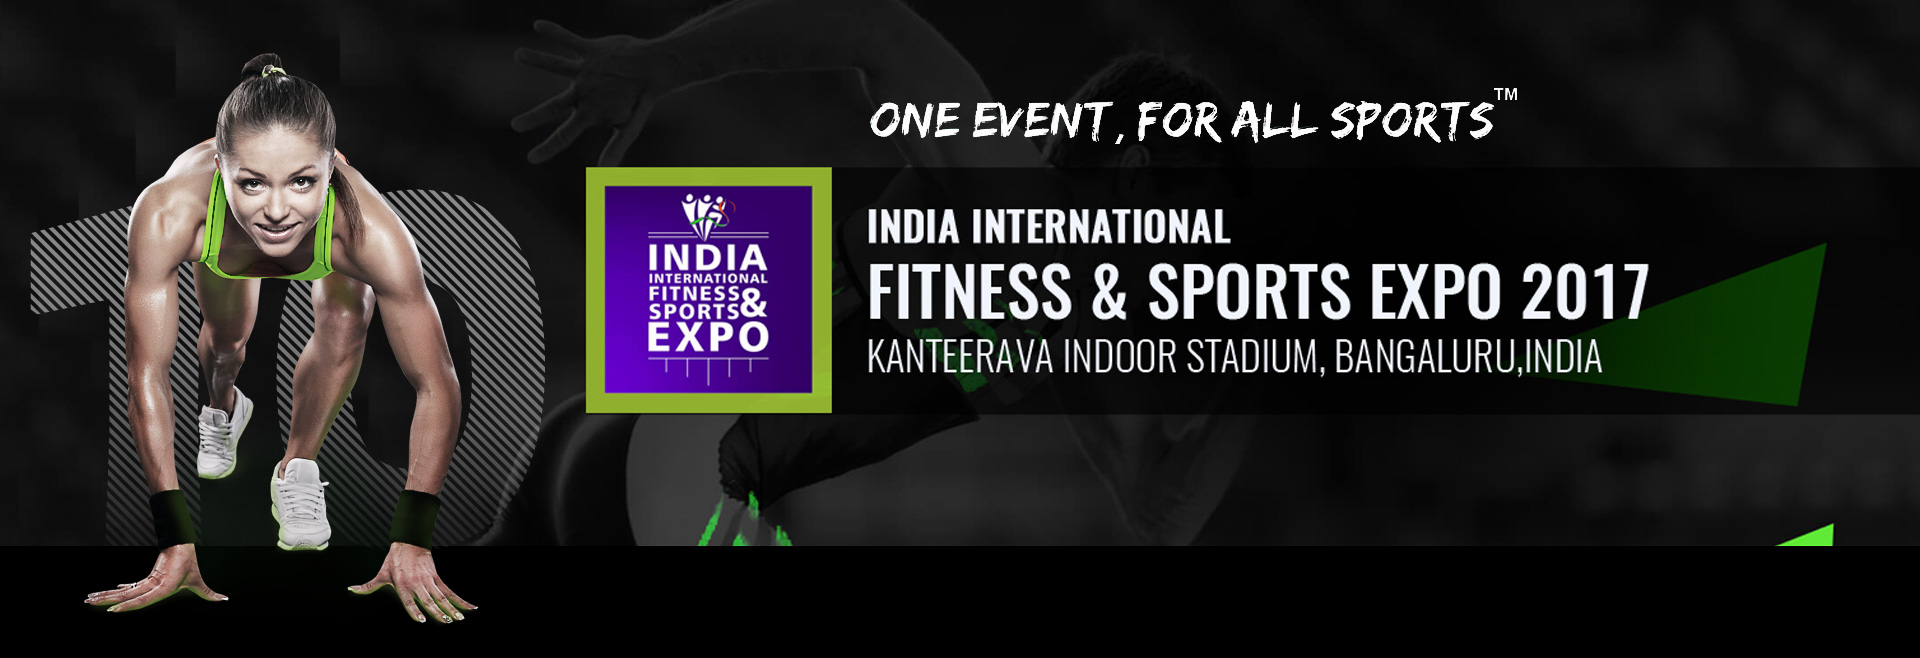 India International Fitness & Sports Expo 2017